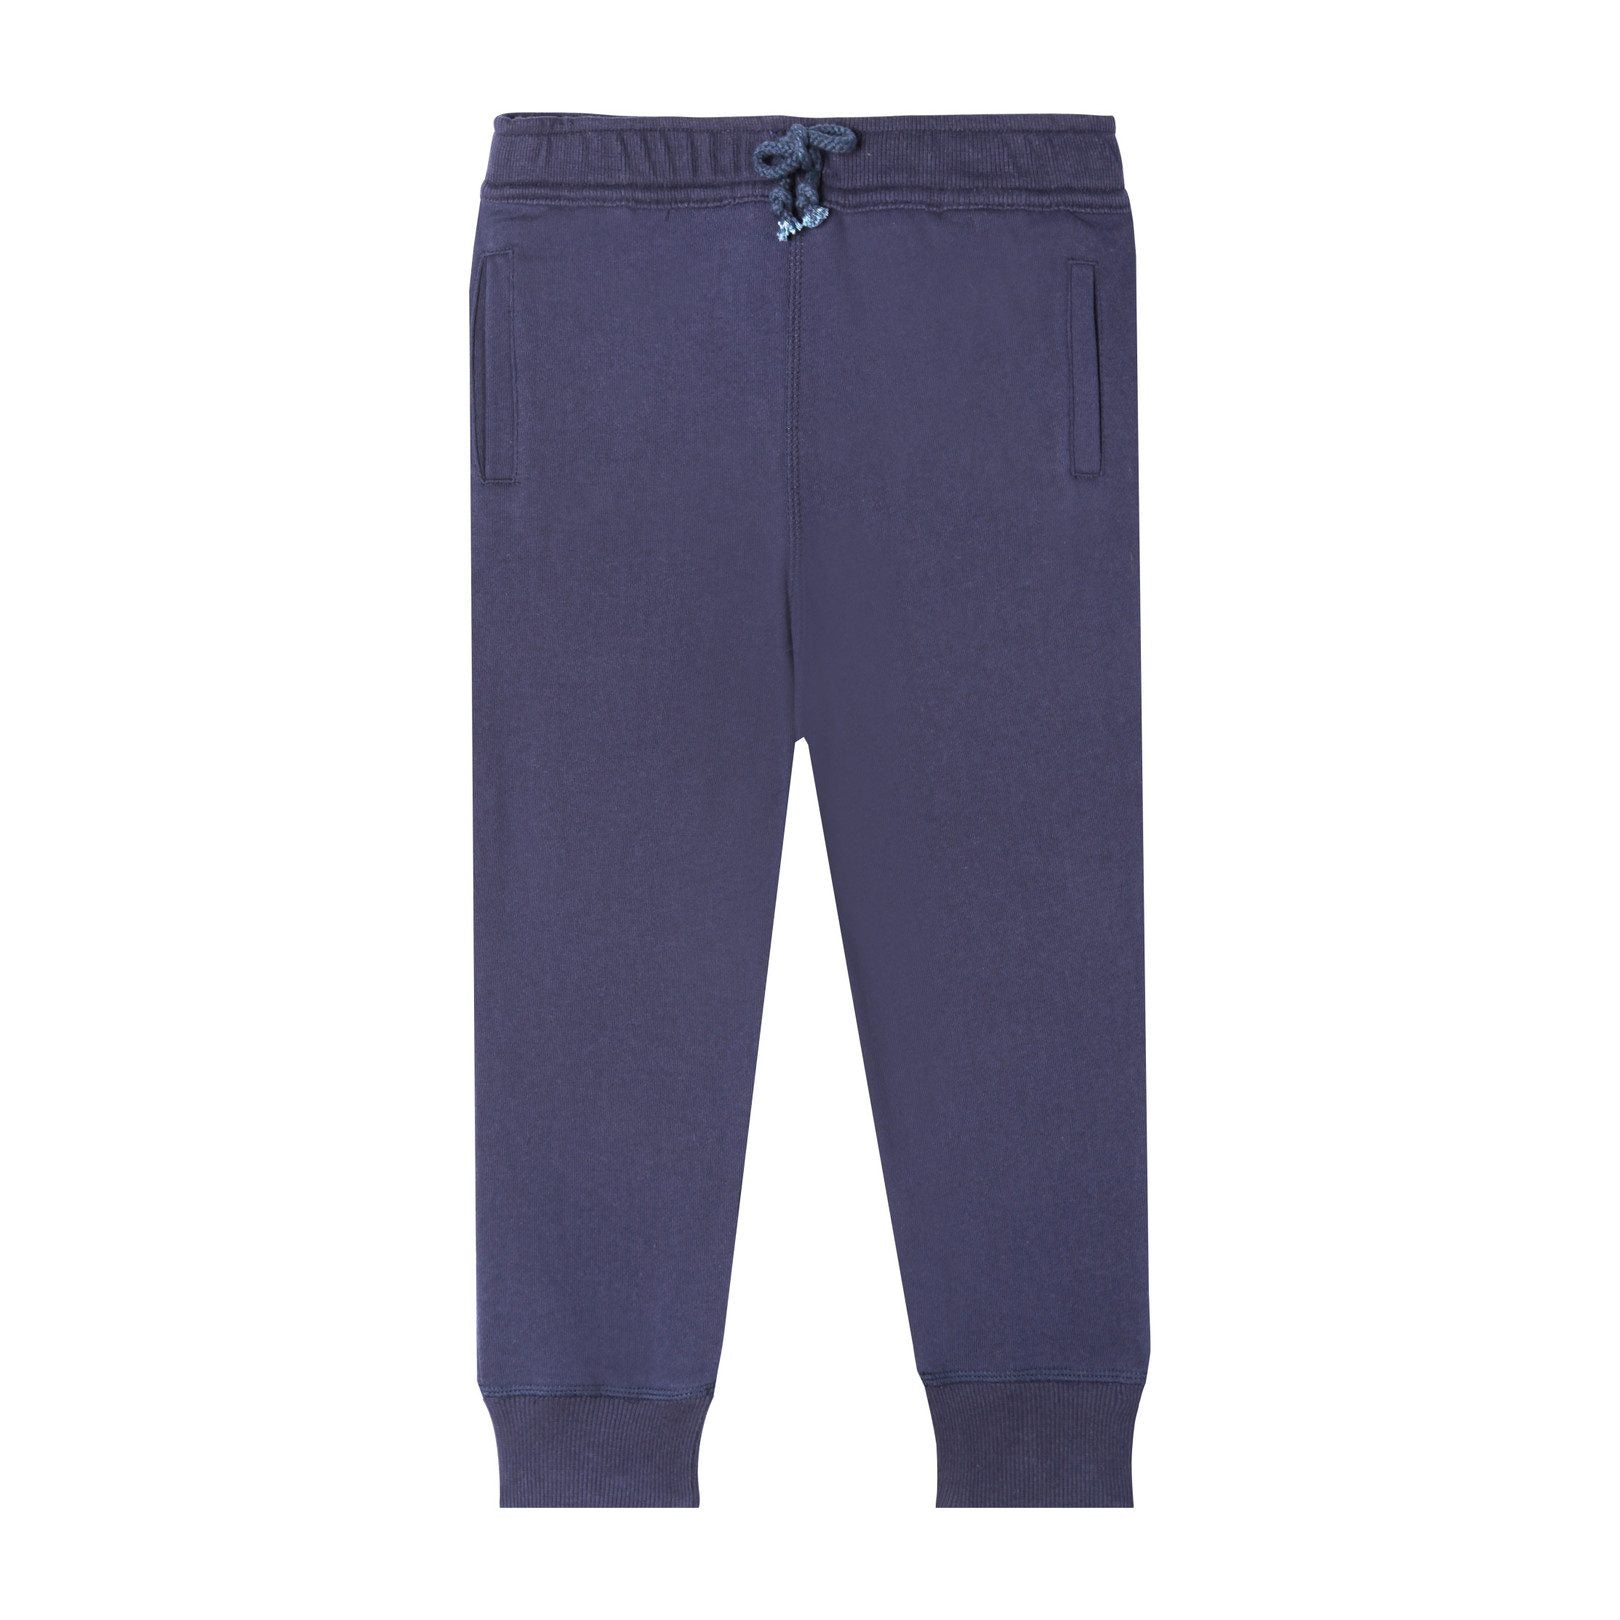 Art & Eden Organic Cotton Mercer Jogger